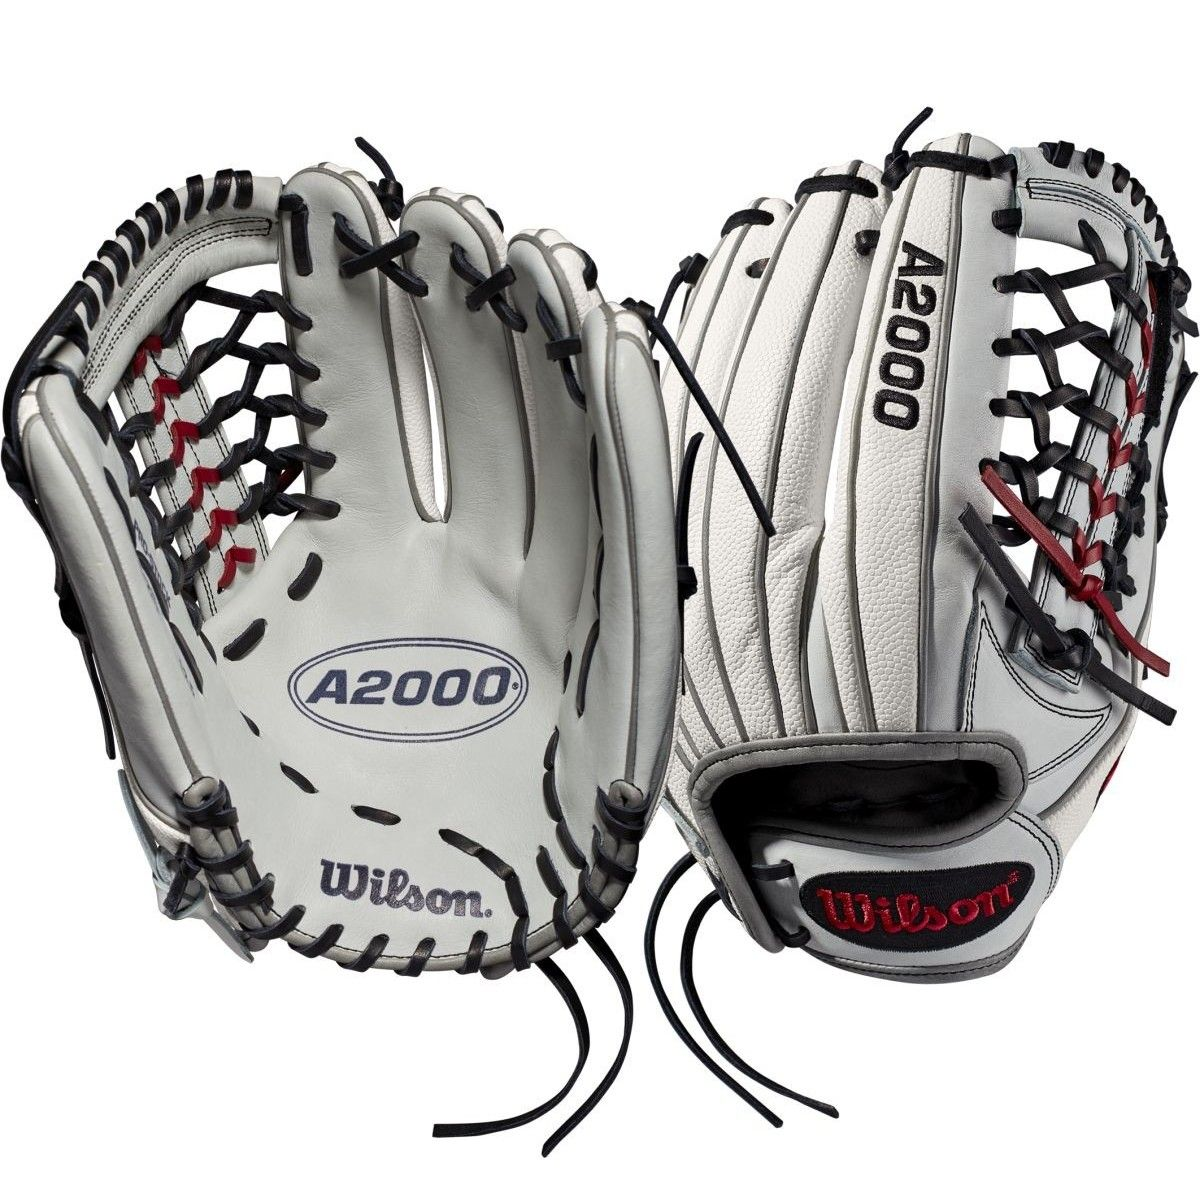 Wilson A2000 Fastpitch SuperSkin T125 12.5